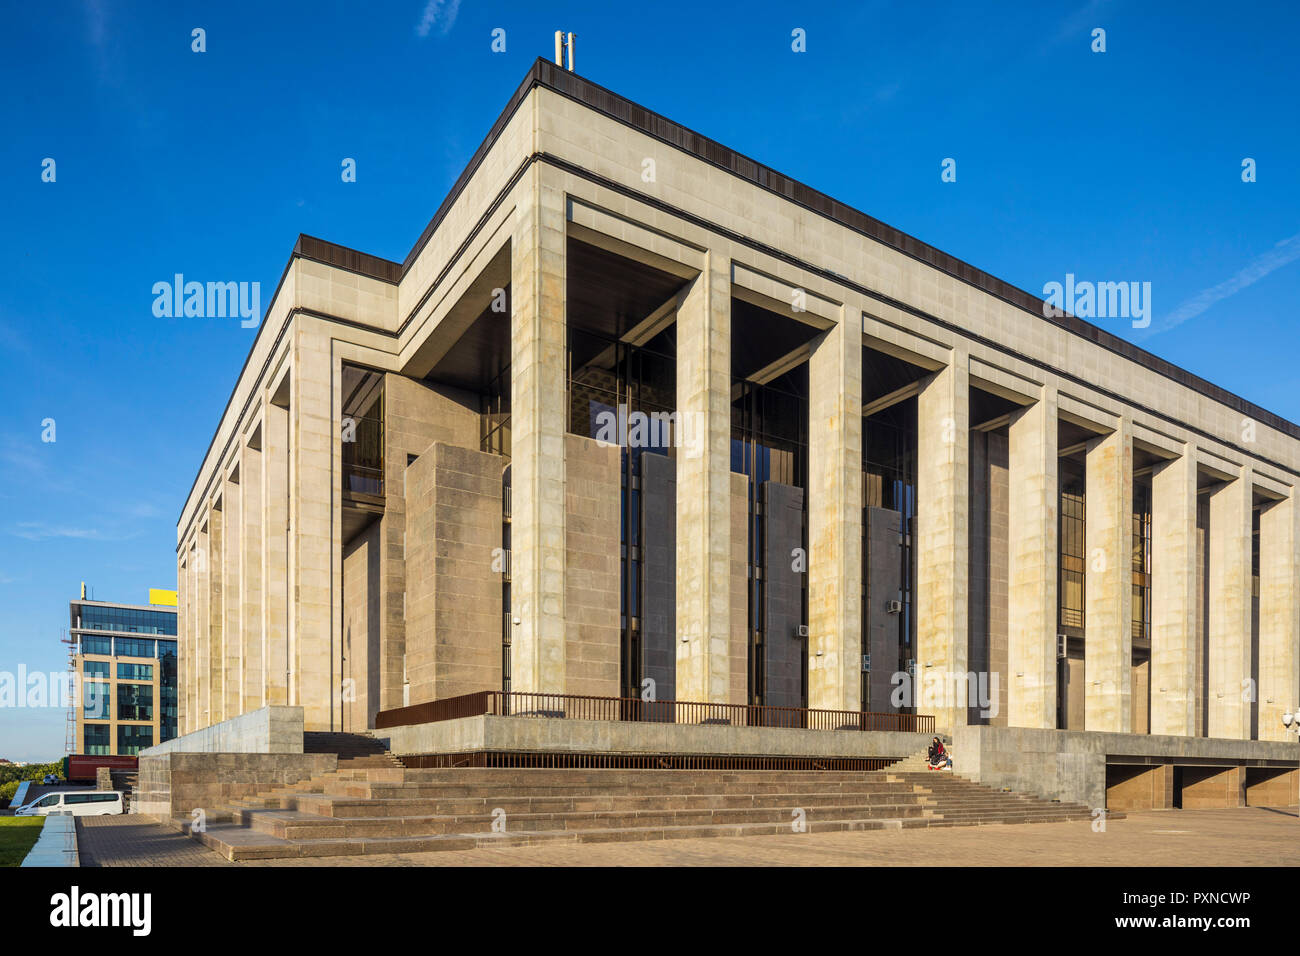 Palace of Republic, Minsk, Belarus - Stock Image